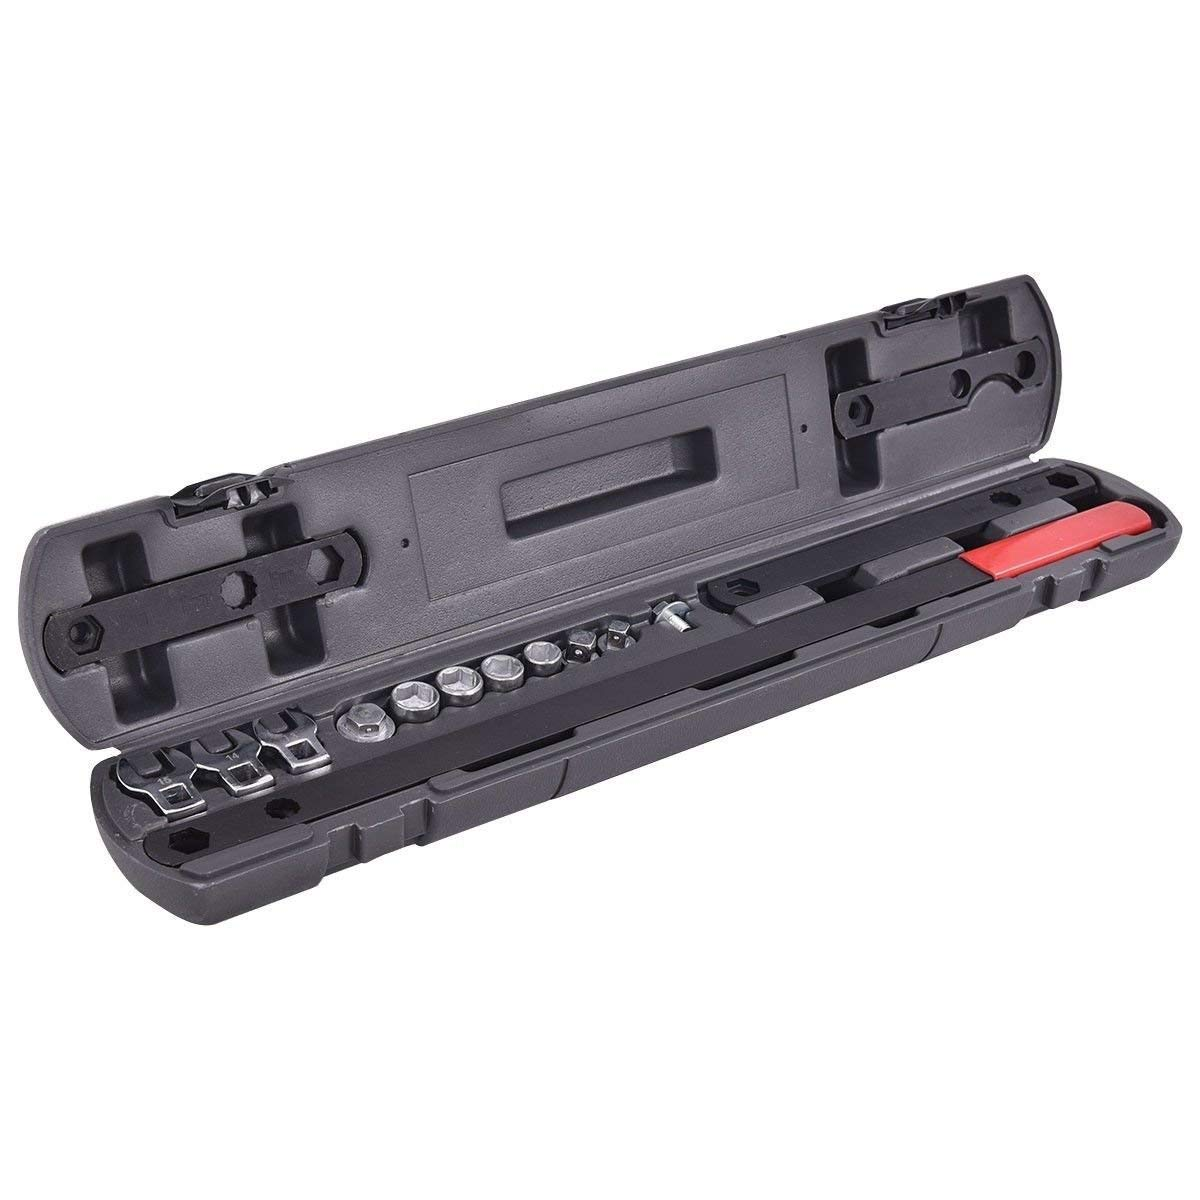 GOFLAME Wrench Set 16 PC Serpentine Belt Tool Set Adjustable Tightener Wrench Tool Ratcheting Wrench,3/8'' 1/2'' Drive